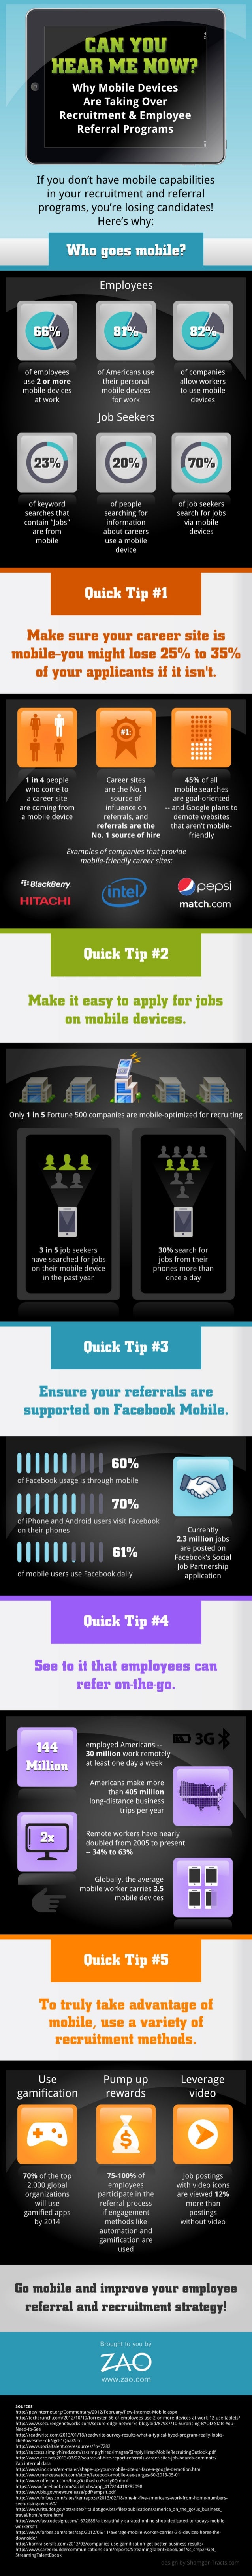 Why Mobile Devices Are Taking Over Recruitment and Employee Referral Programs [INFOGRAPHIC]